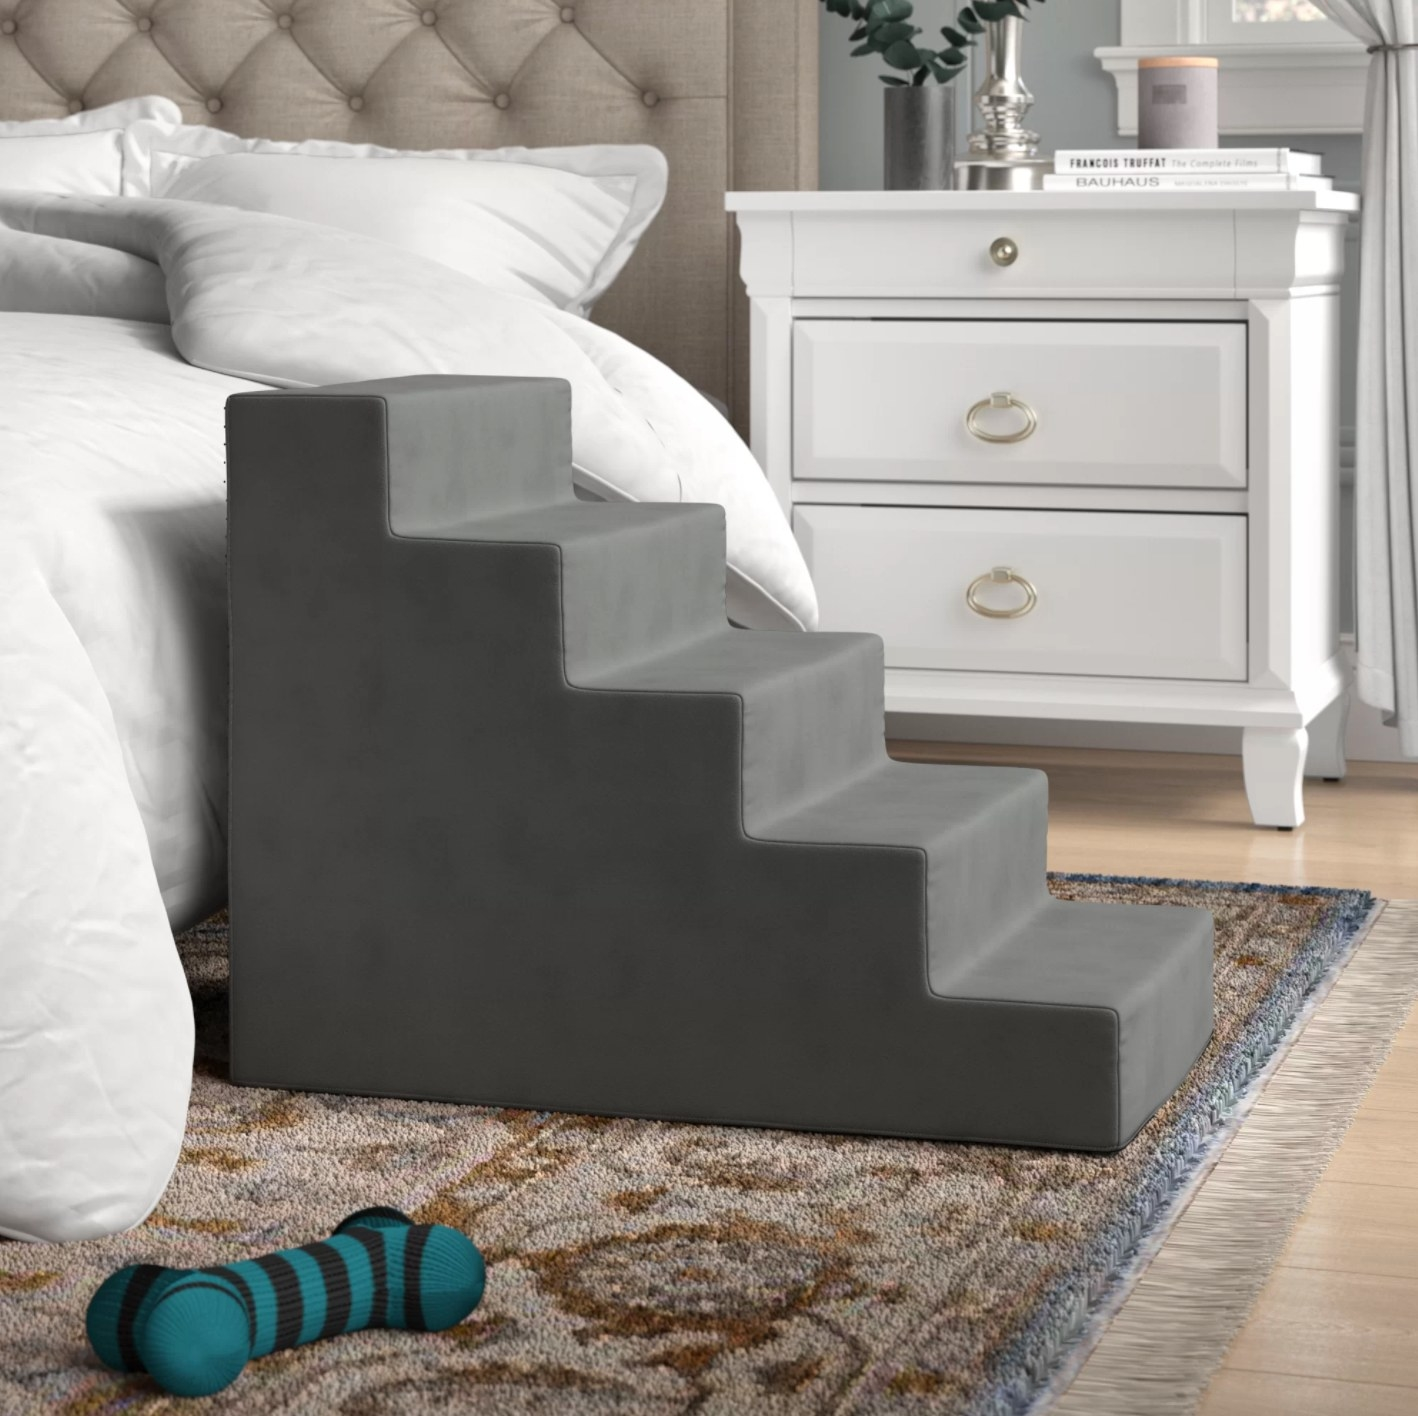 The set of five pet stairs in gray